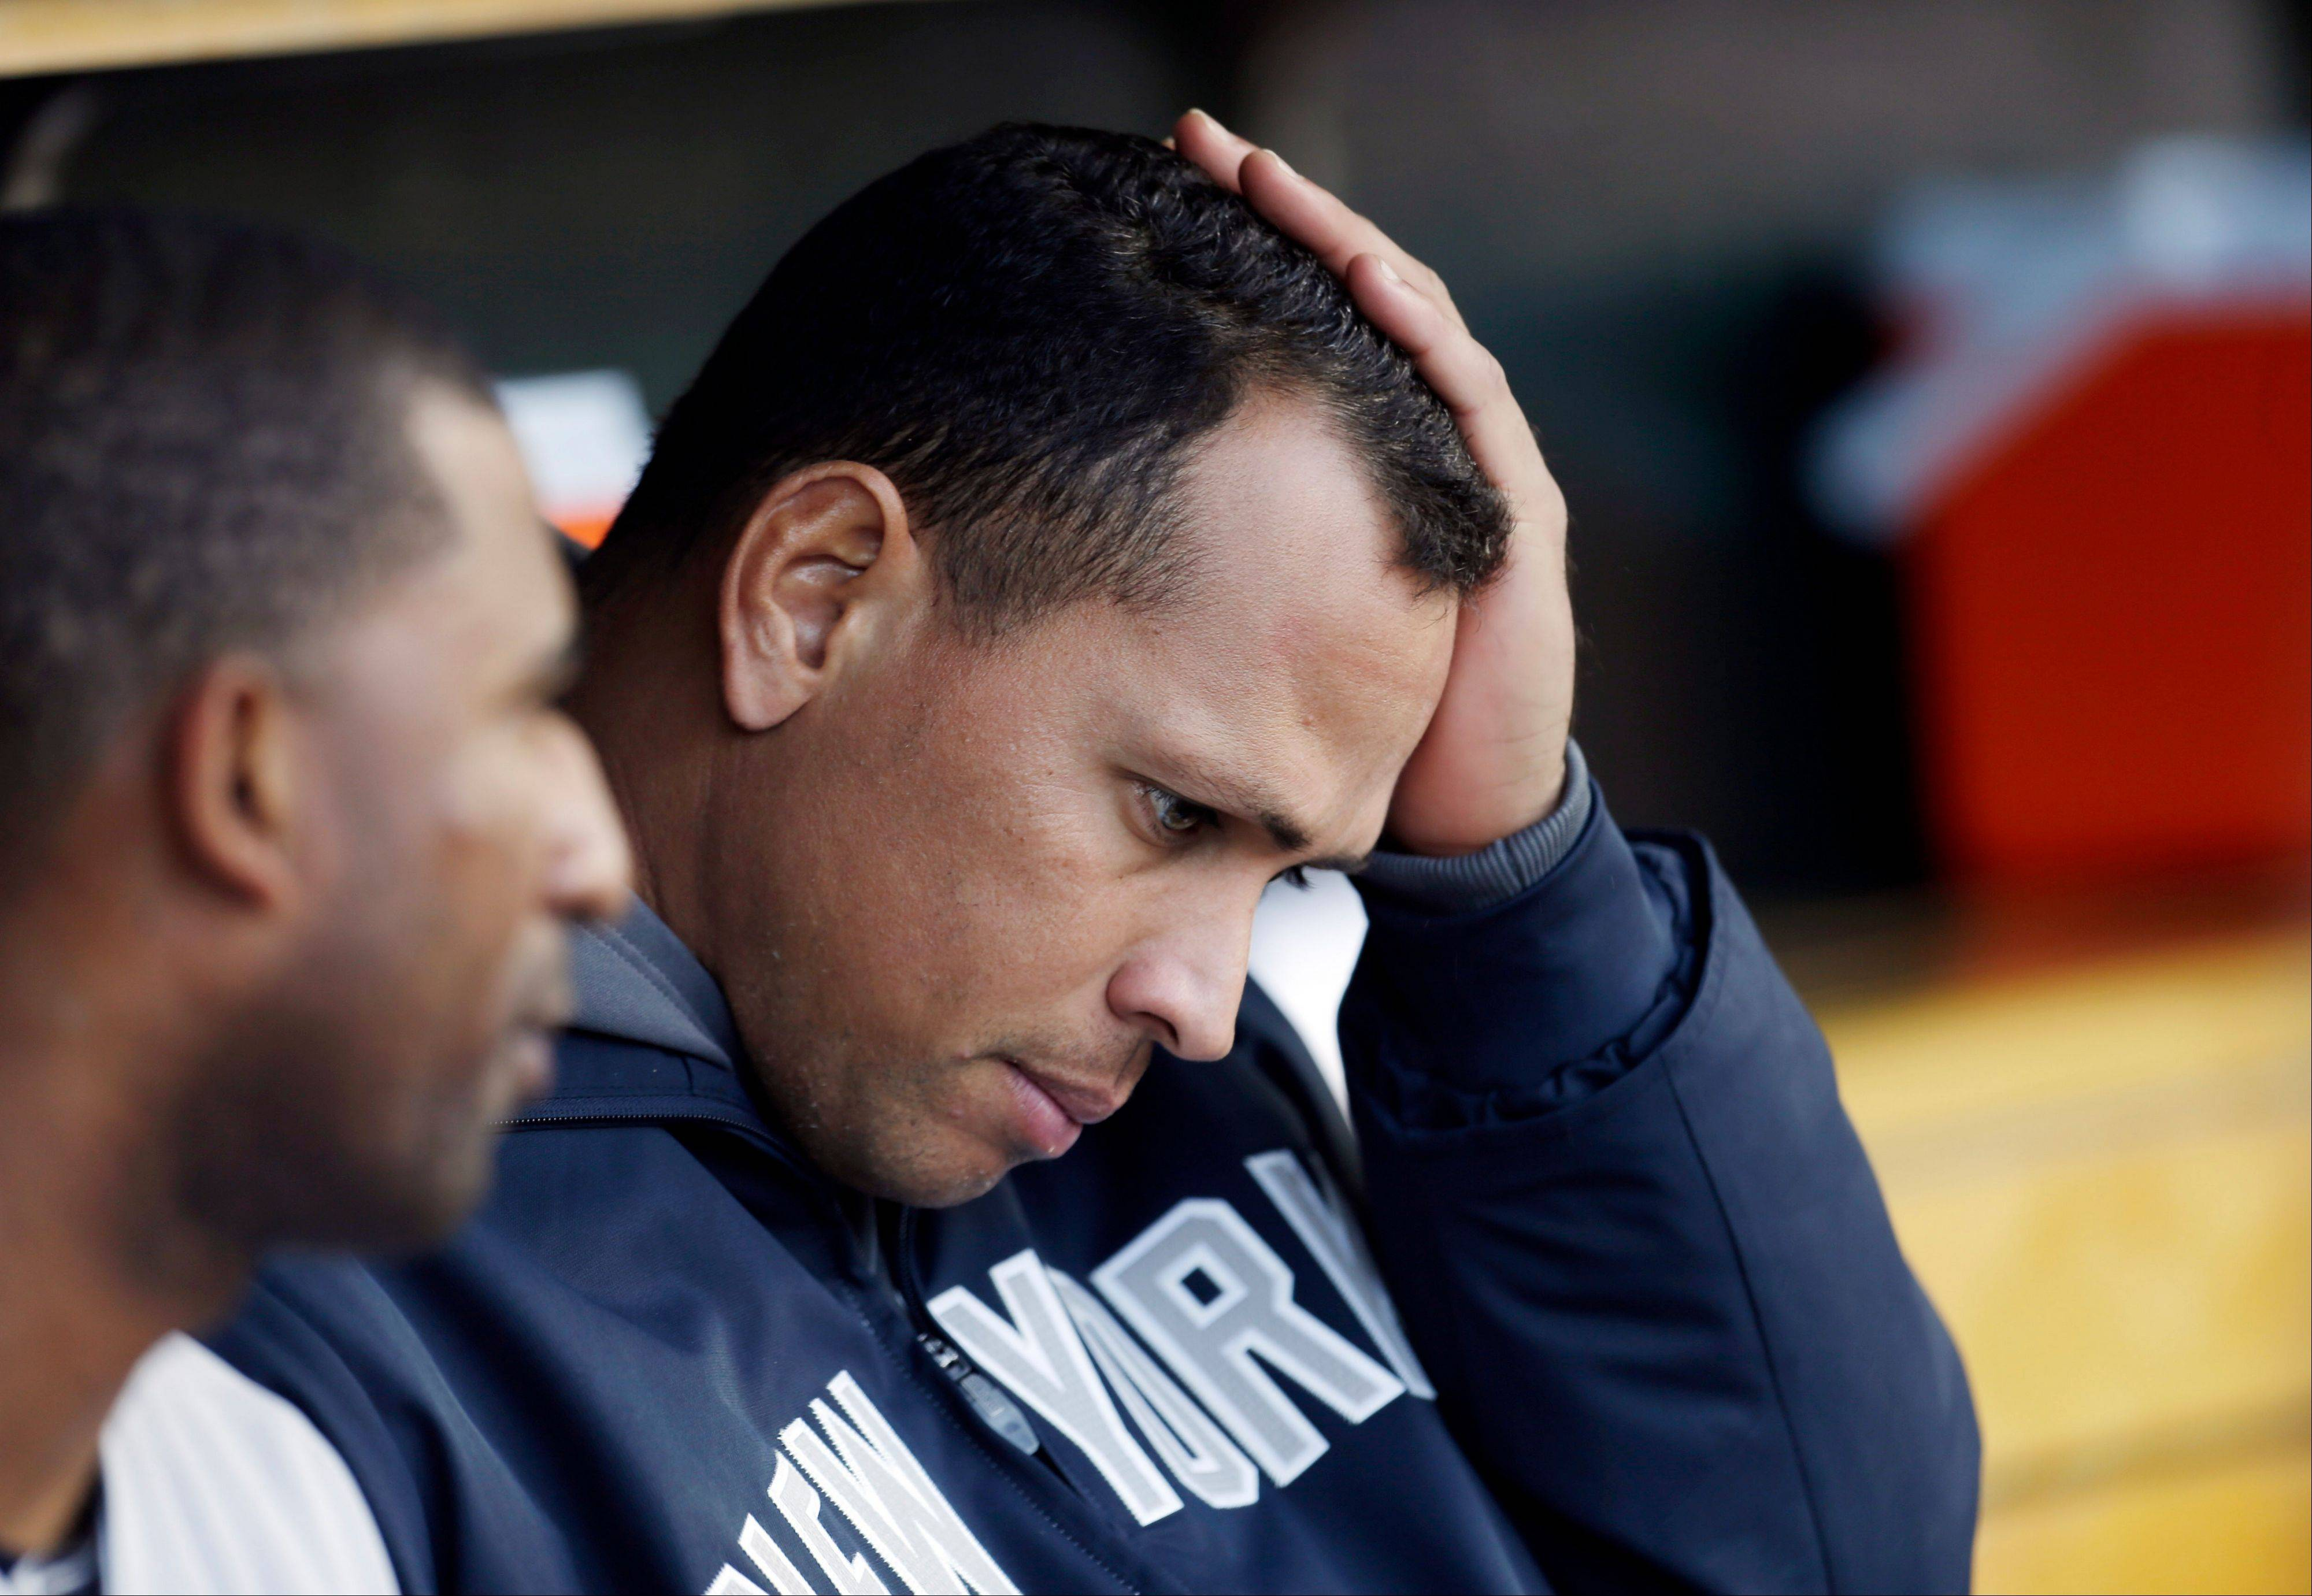 Although Alex Rodriguez of the New York Yankees has said he hasn't used performance-enhancing drugs since 2003, an investigation by the Miami New Times uncovered his name and those of dozens of other sports stars from a patient list belonging to a Miami clinic that sold HGH, anabolic steroids and other drugs.